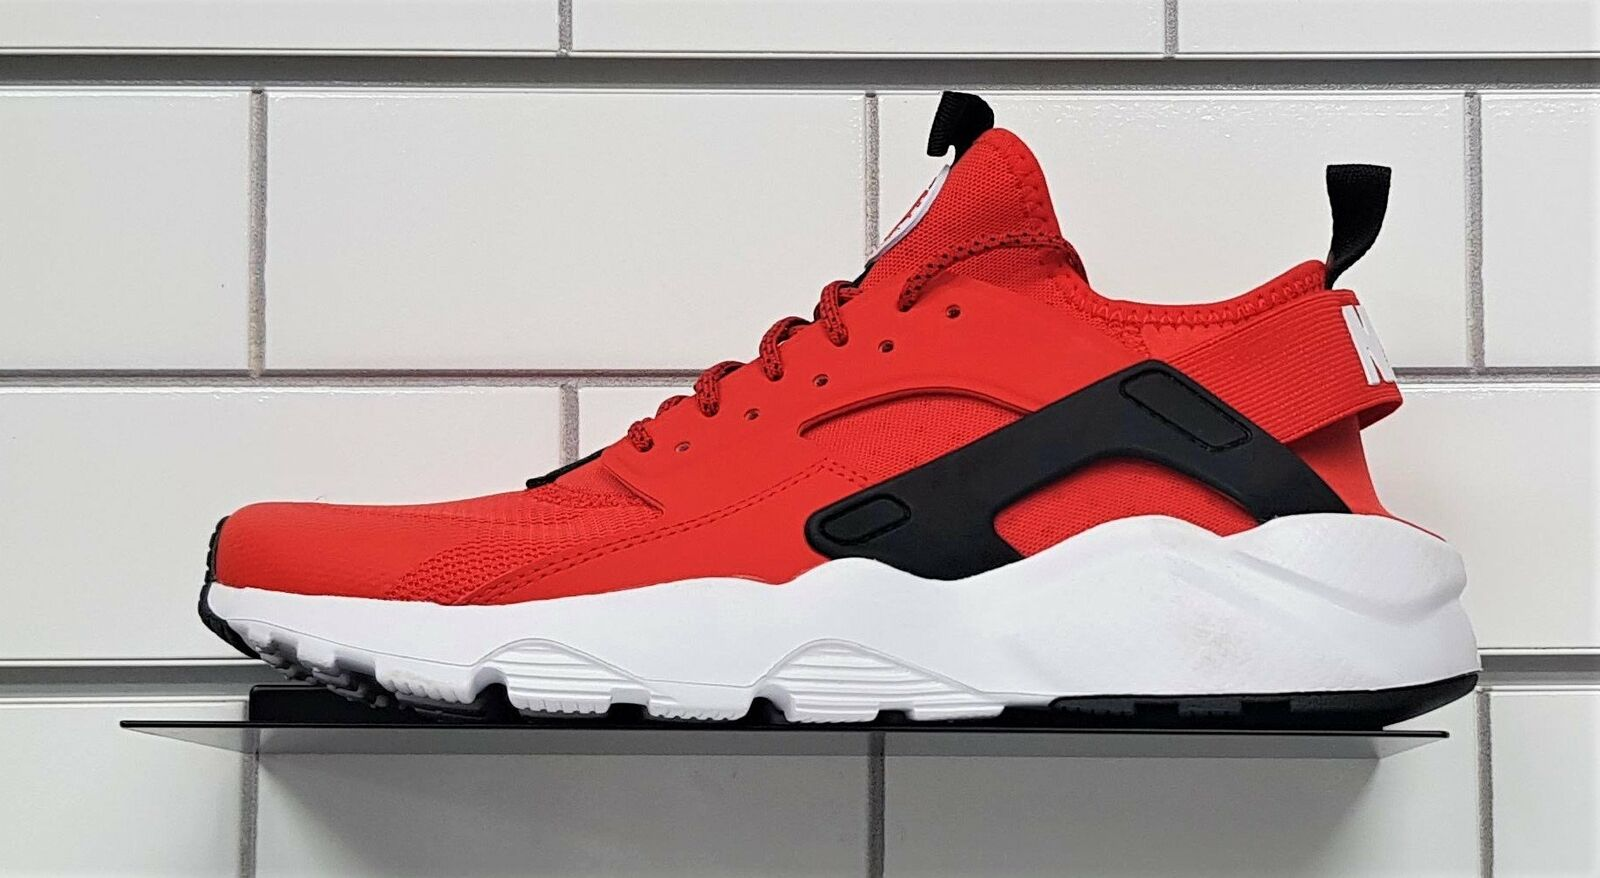 Nike Huarache Run Ultra Sneakers, Hanablack Red   White